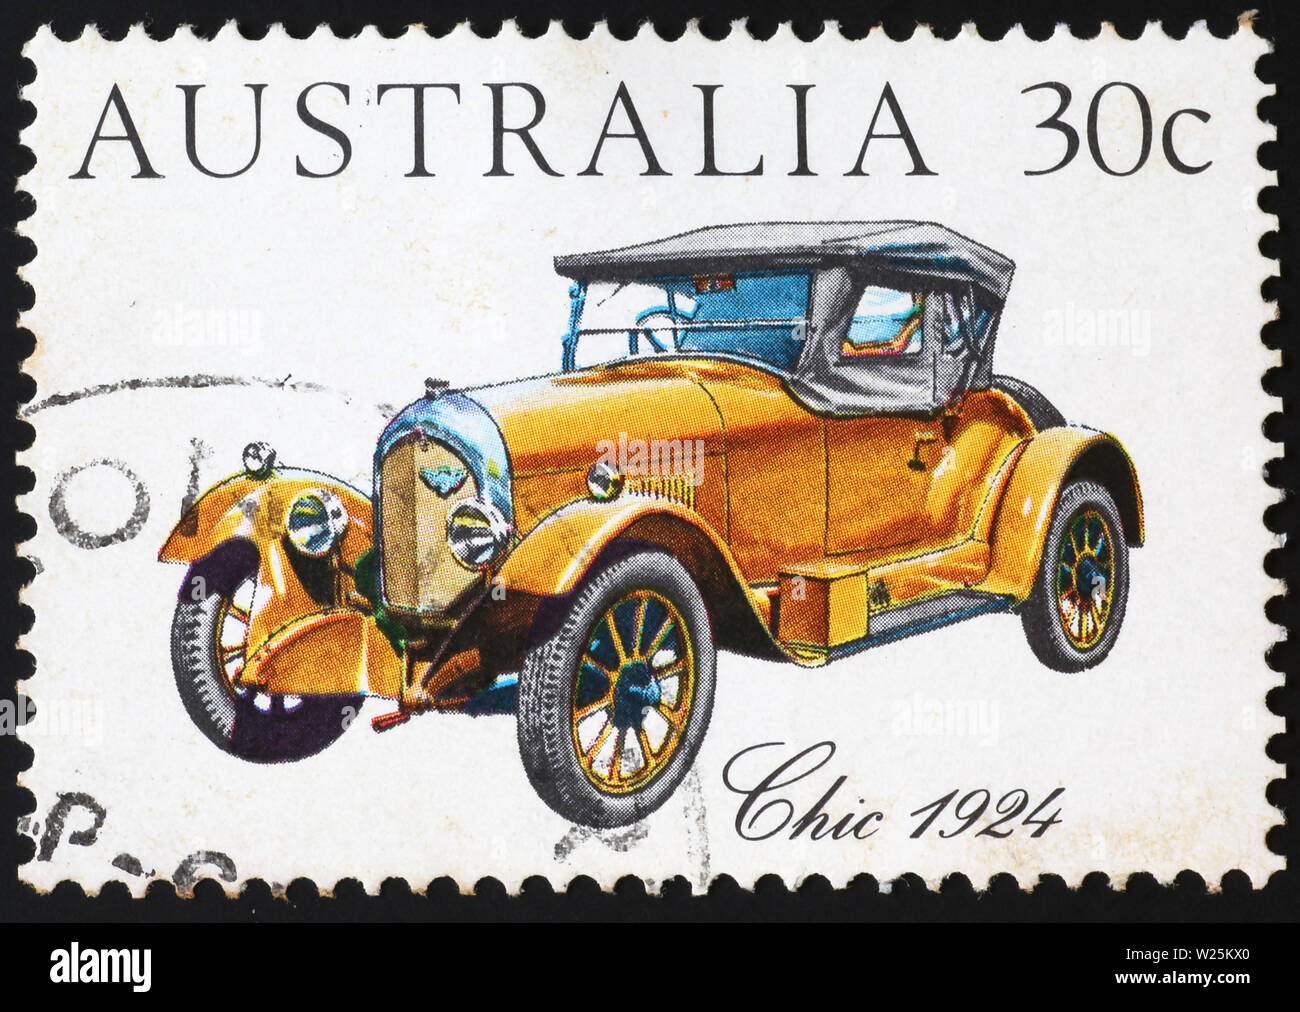 Beautiful antique yellow car on australian postage stamp - Stock Image